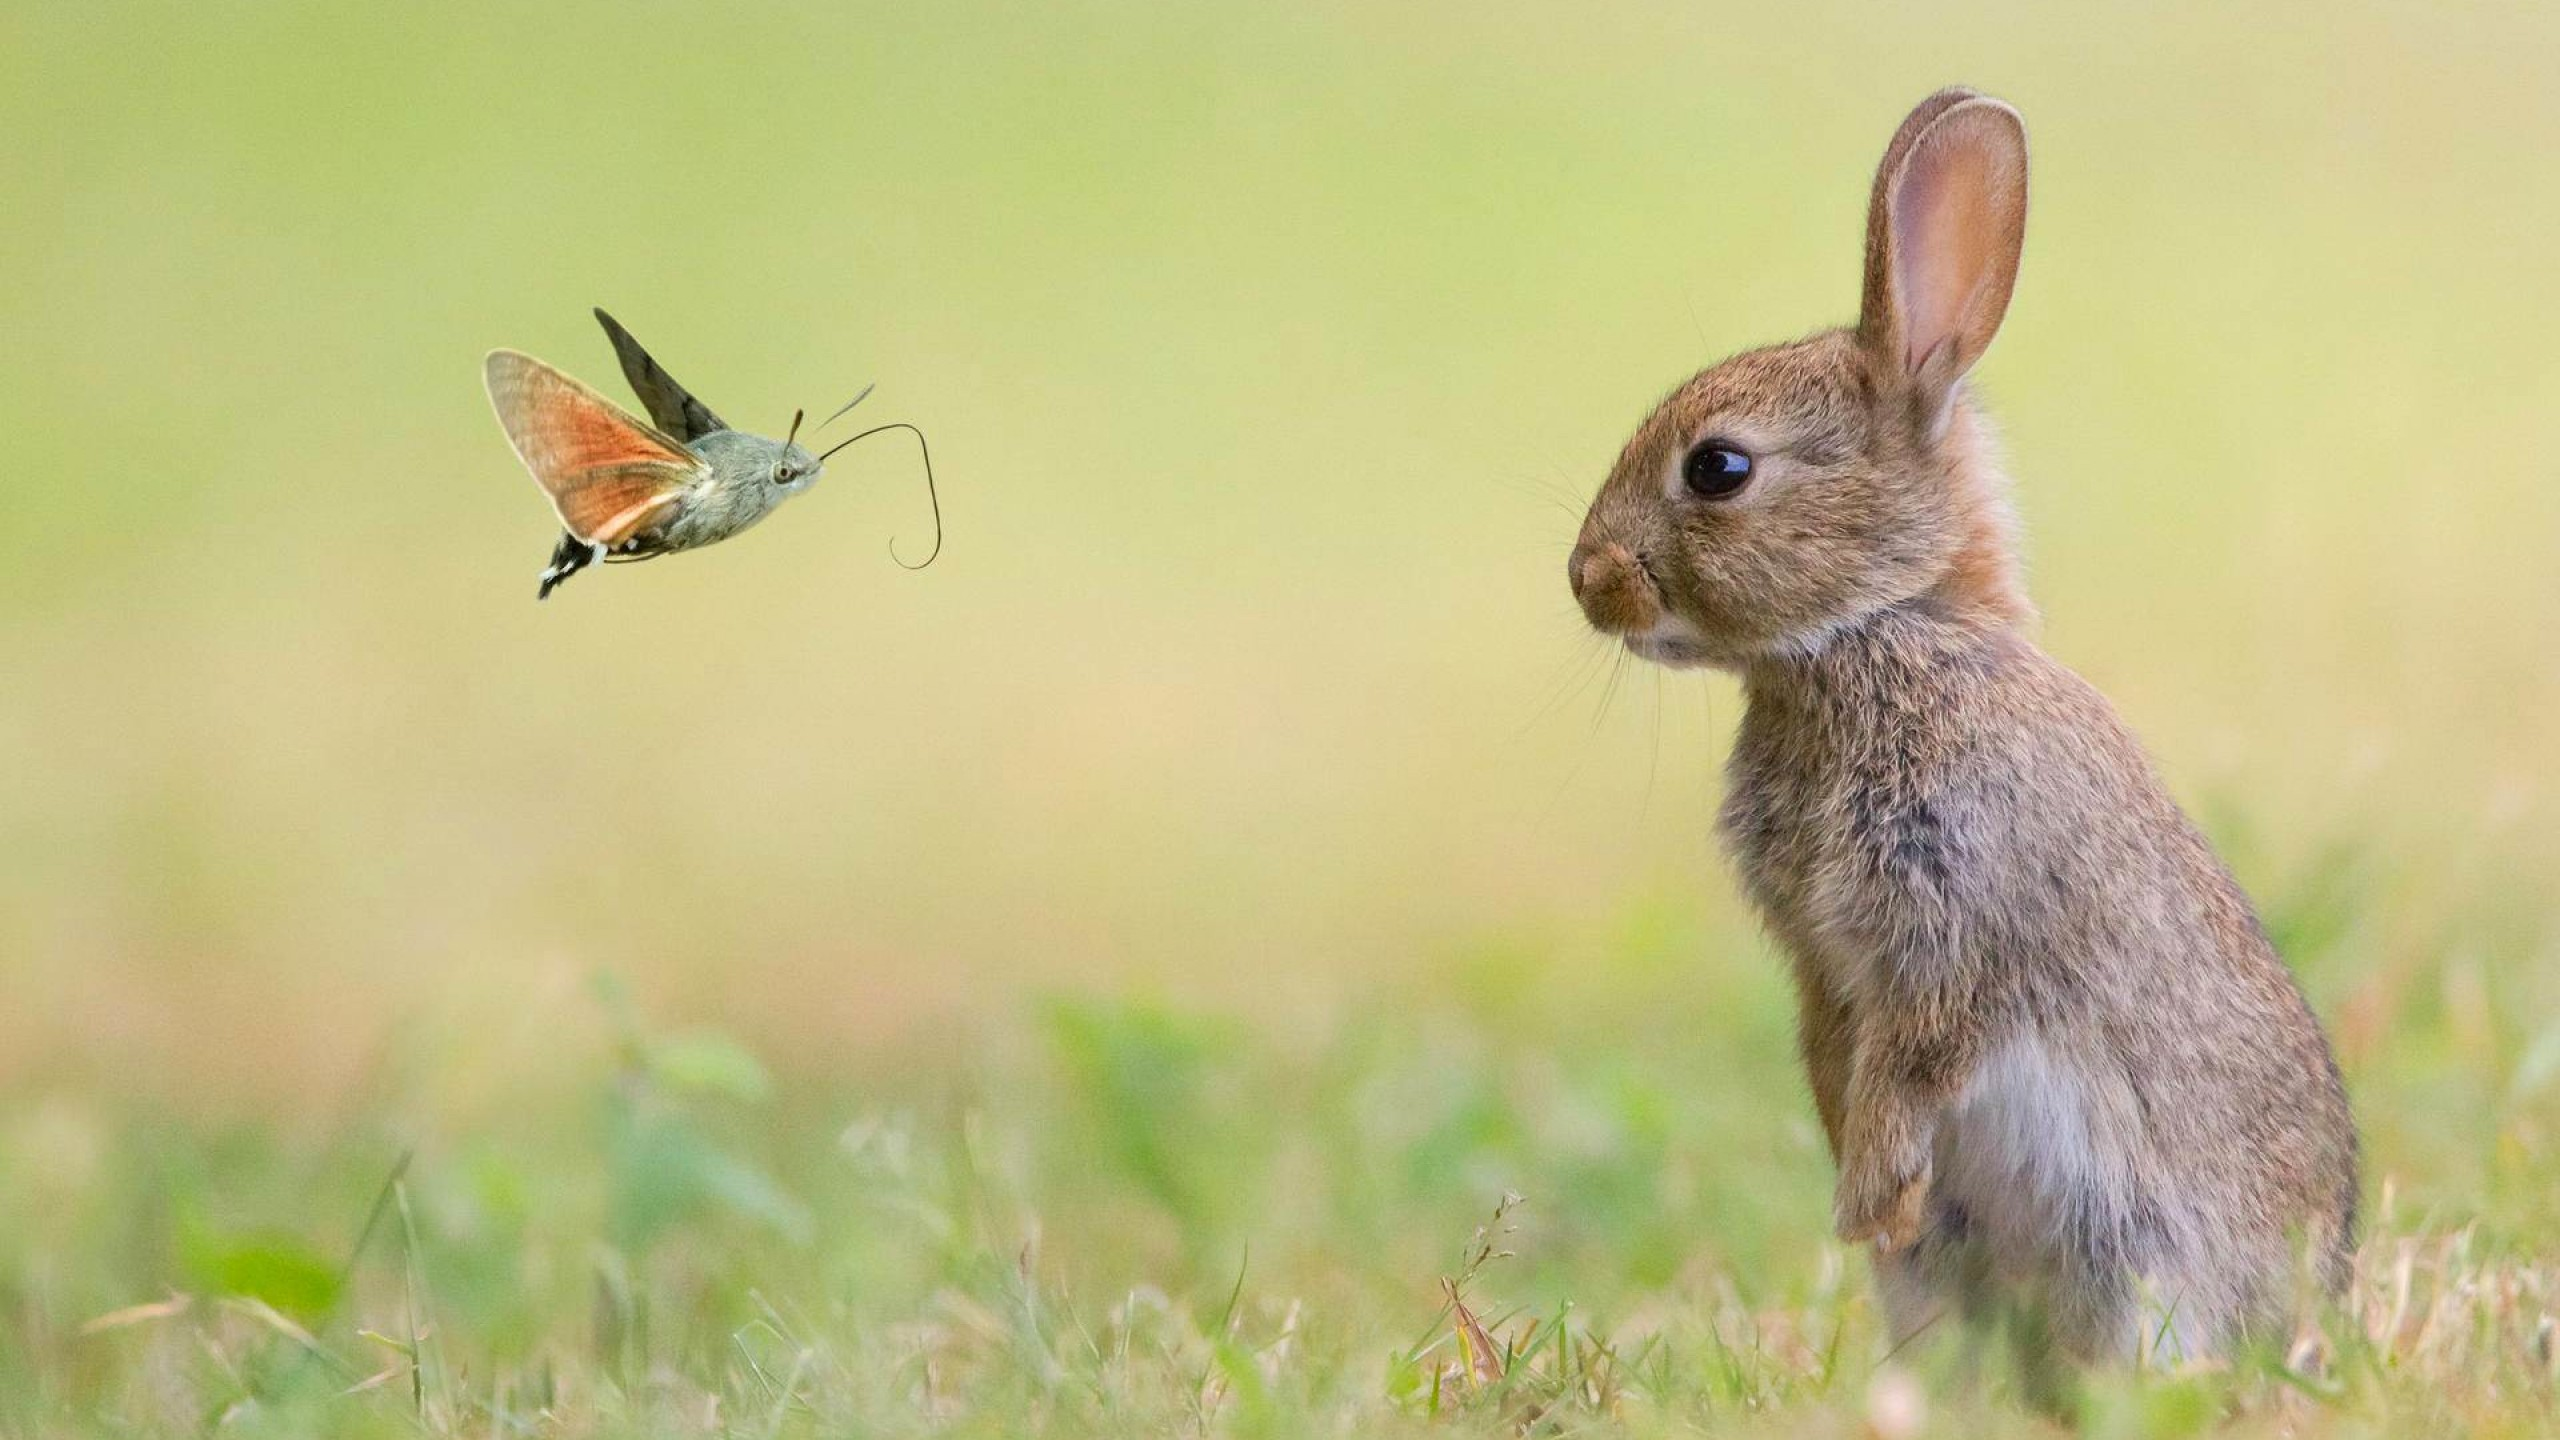 Life Hd Wallpapers With Quotes Wallpaper Rabbit Cute Animals Butterfly 4k Animals 15980